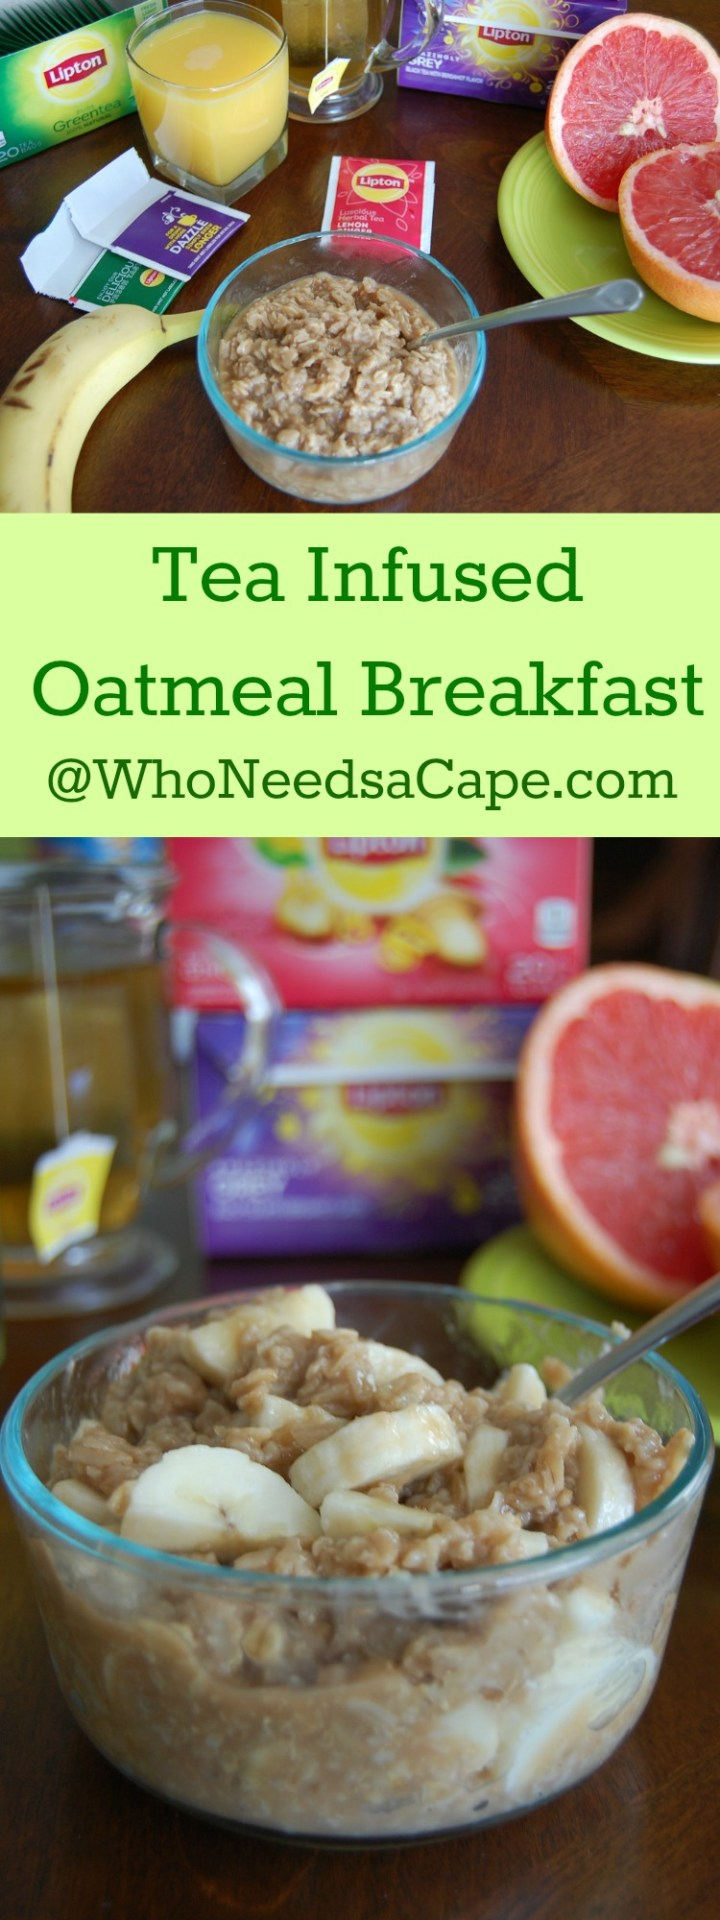 Tea Infused Oatmeal Breakfast is a power breakfast that will get you started in the morning! Enjoy a delicious hot breakfast ready in minutes!